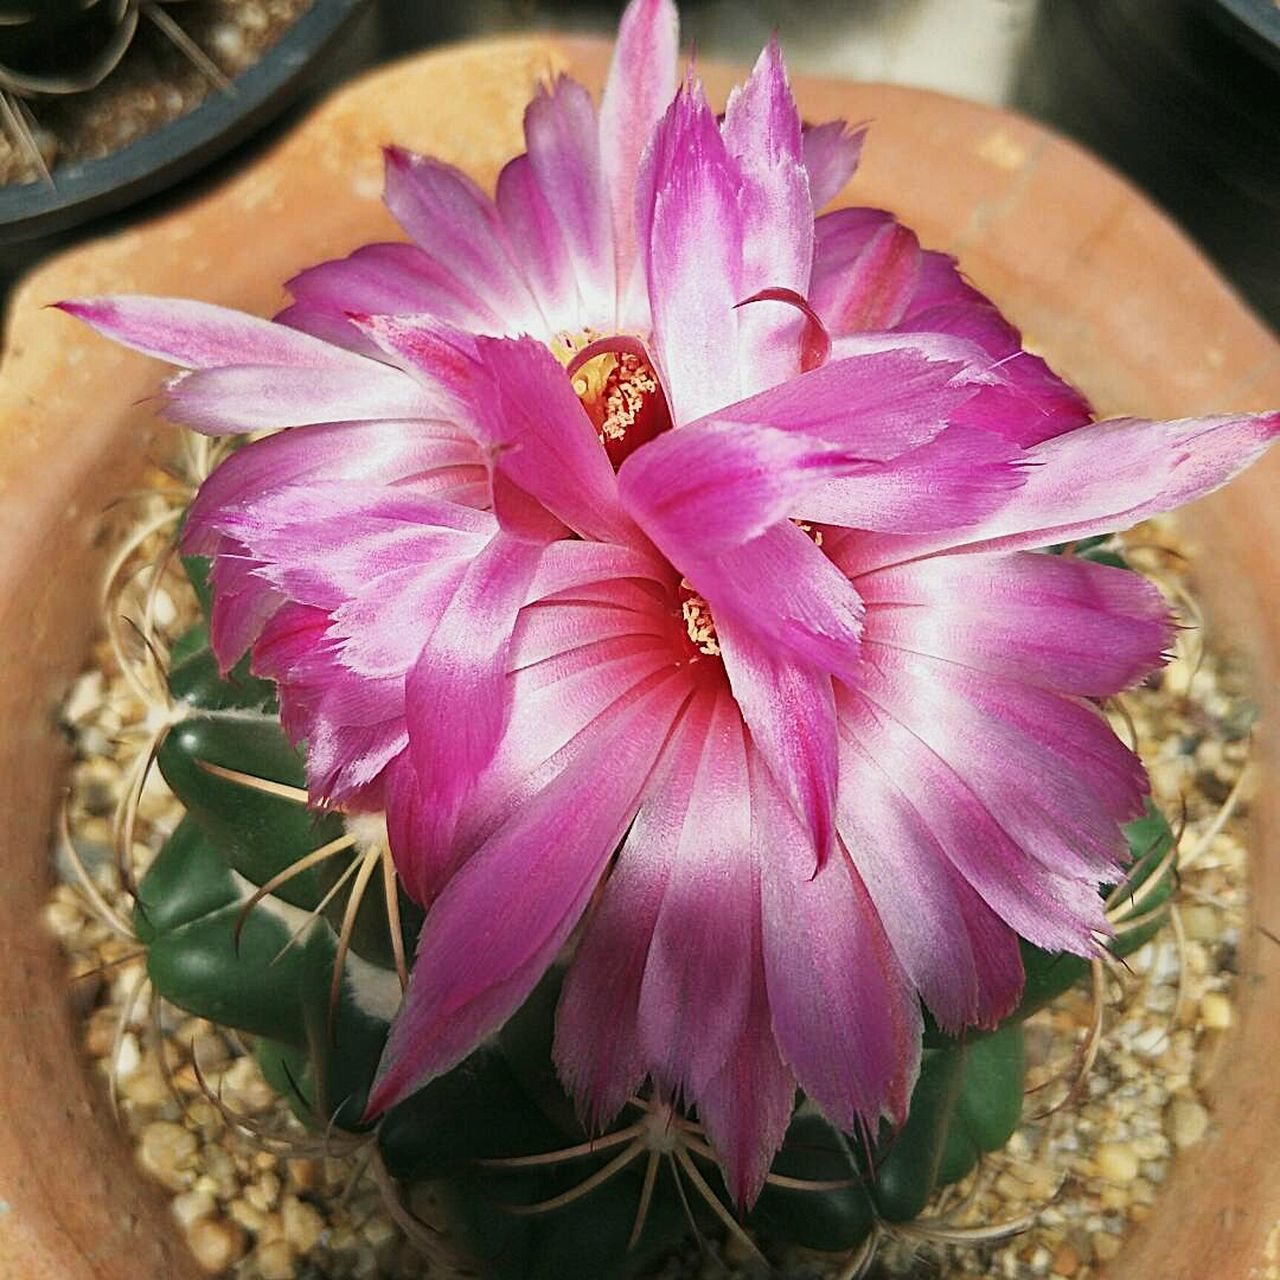 Cactus Flower Cactusflower Cactuslover Coryphantha Beauty In Nature Plant Cacti Succulents